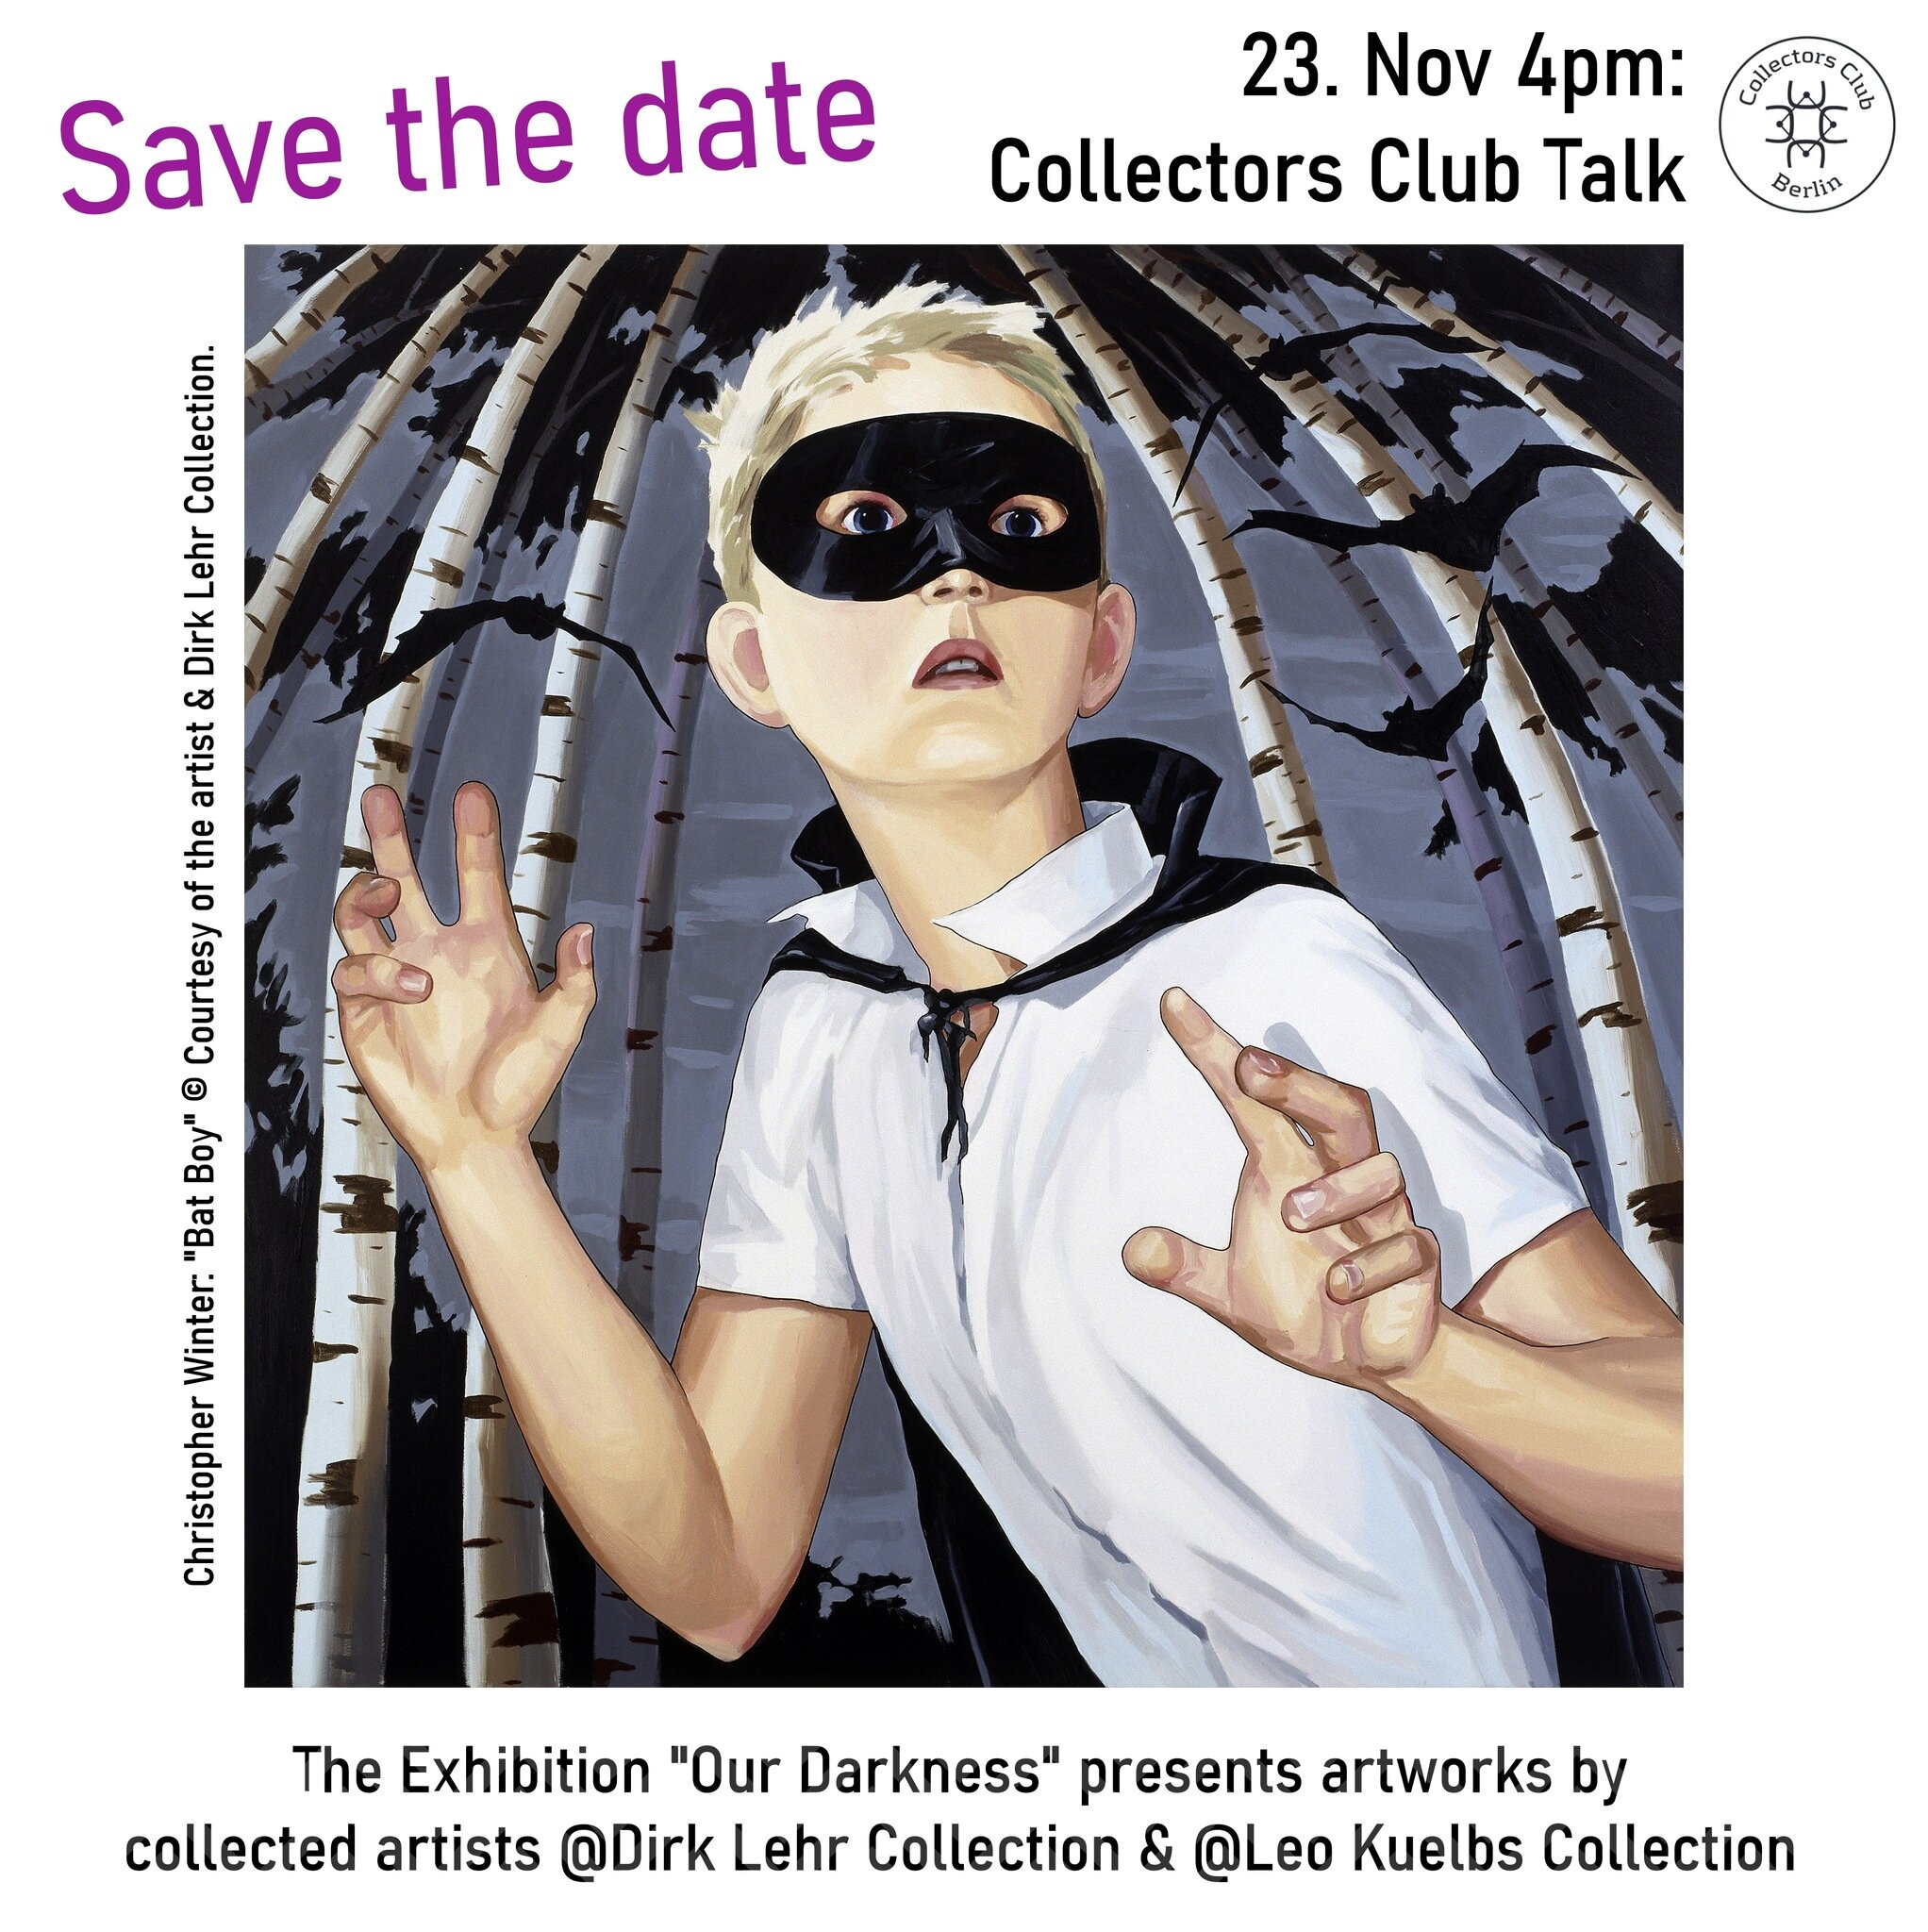 save-the-date-OUR-DARKNESS-Expo-and-Talk-Lehr-and-Kuelbs-Collections-Picture-Christopher-Winter-Bat_Boy_2007_acryliconcanvas_190x190cm_web (1).jpg